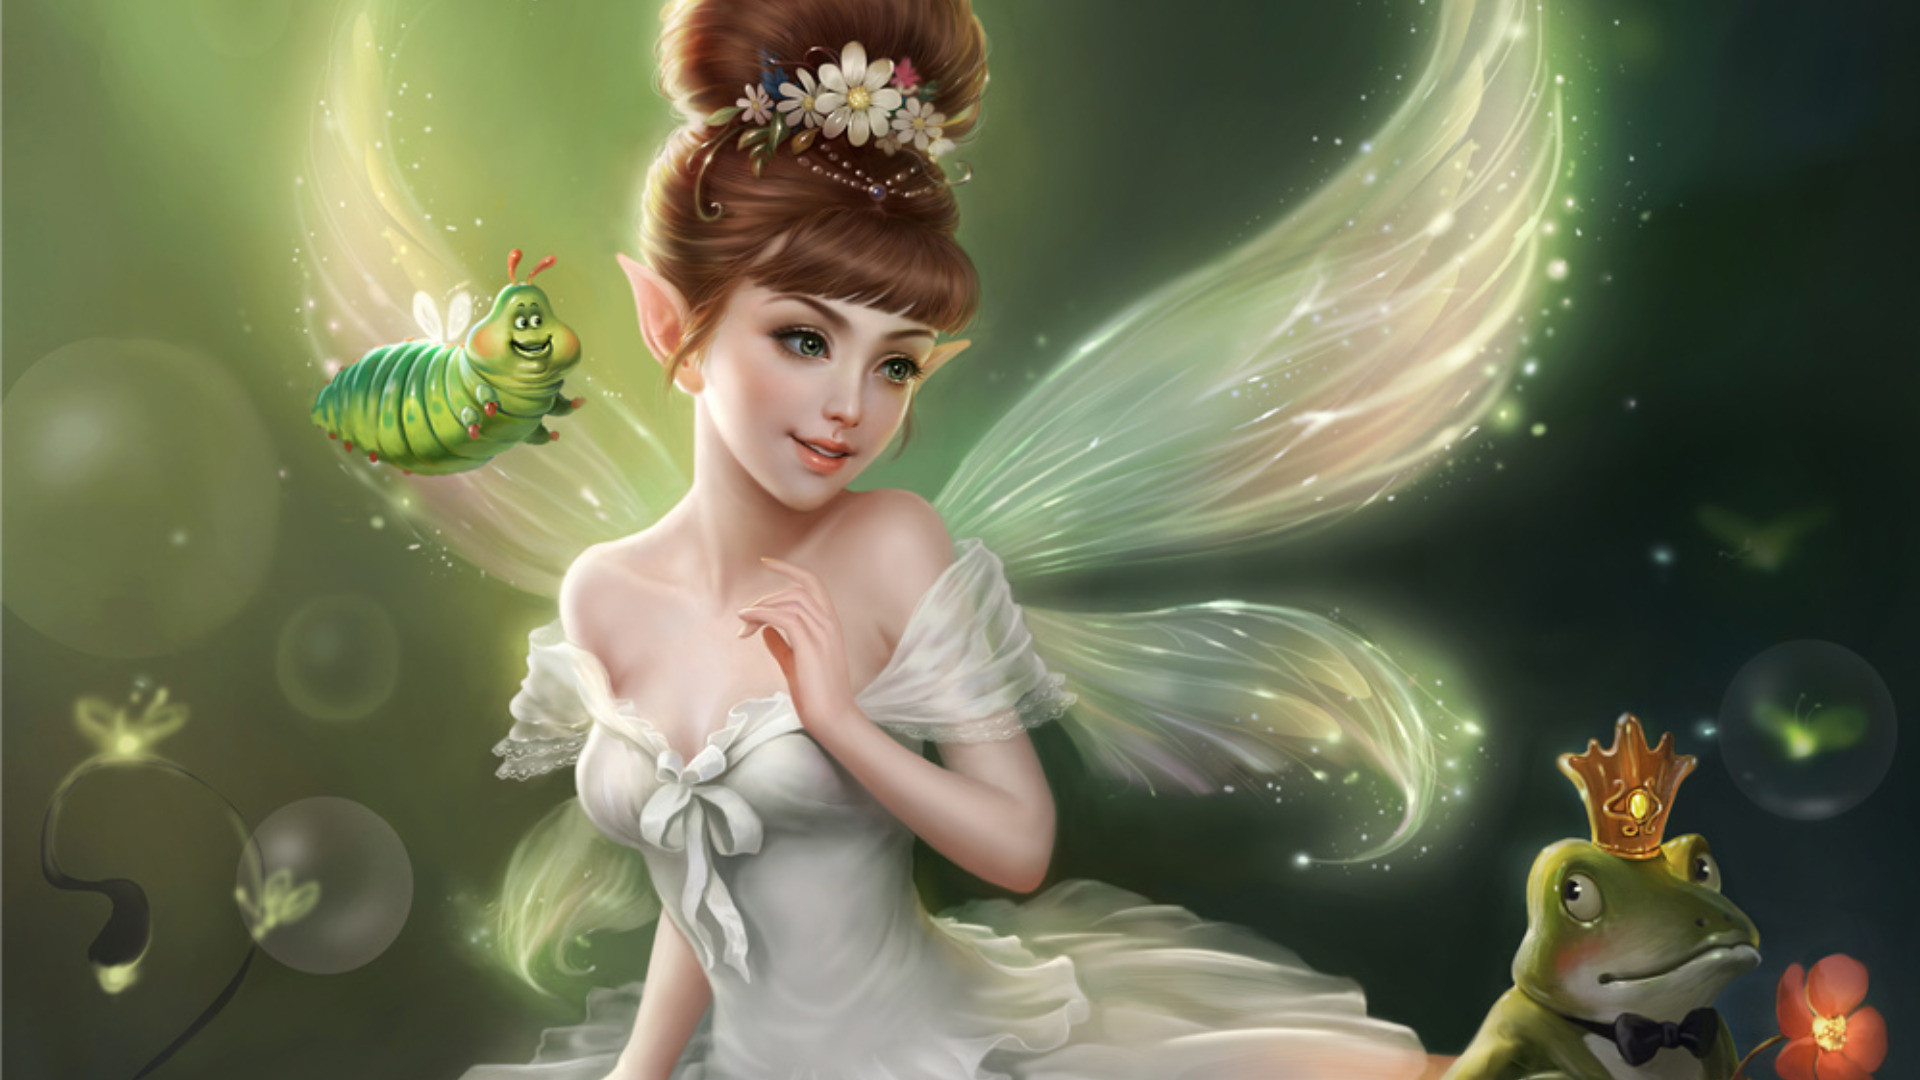 Res: 1920x1080, Wallpapers Of Angels And Fairies : Background ID:234098058